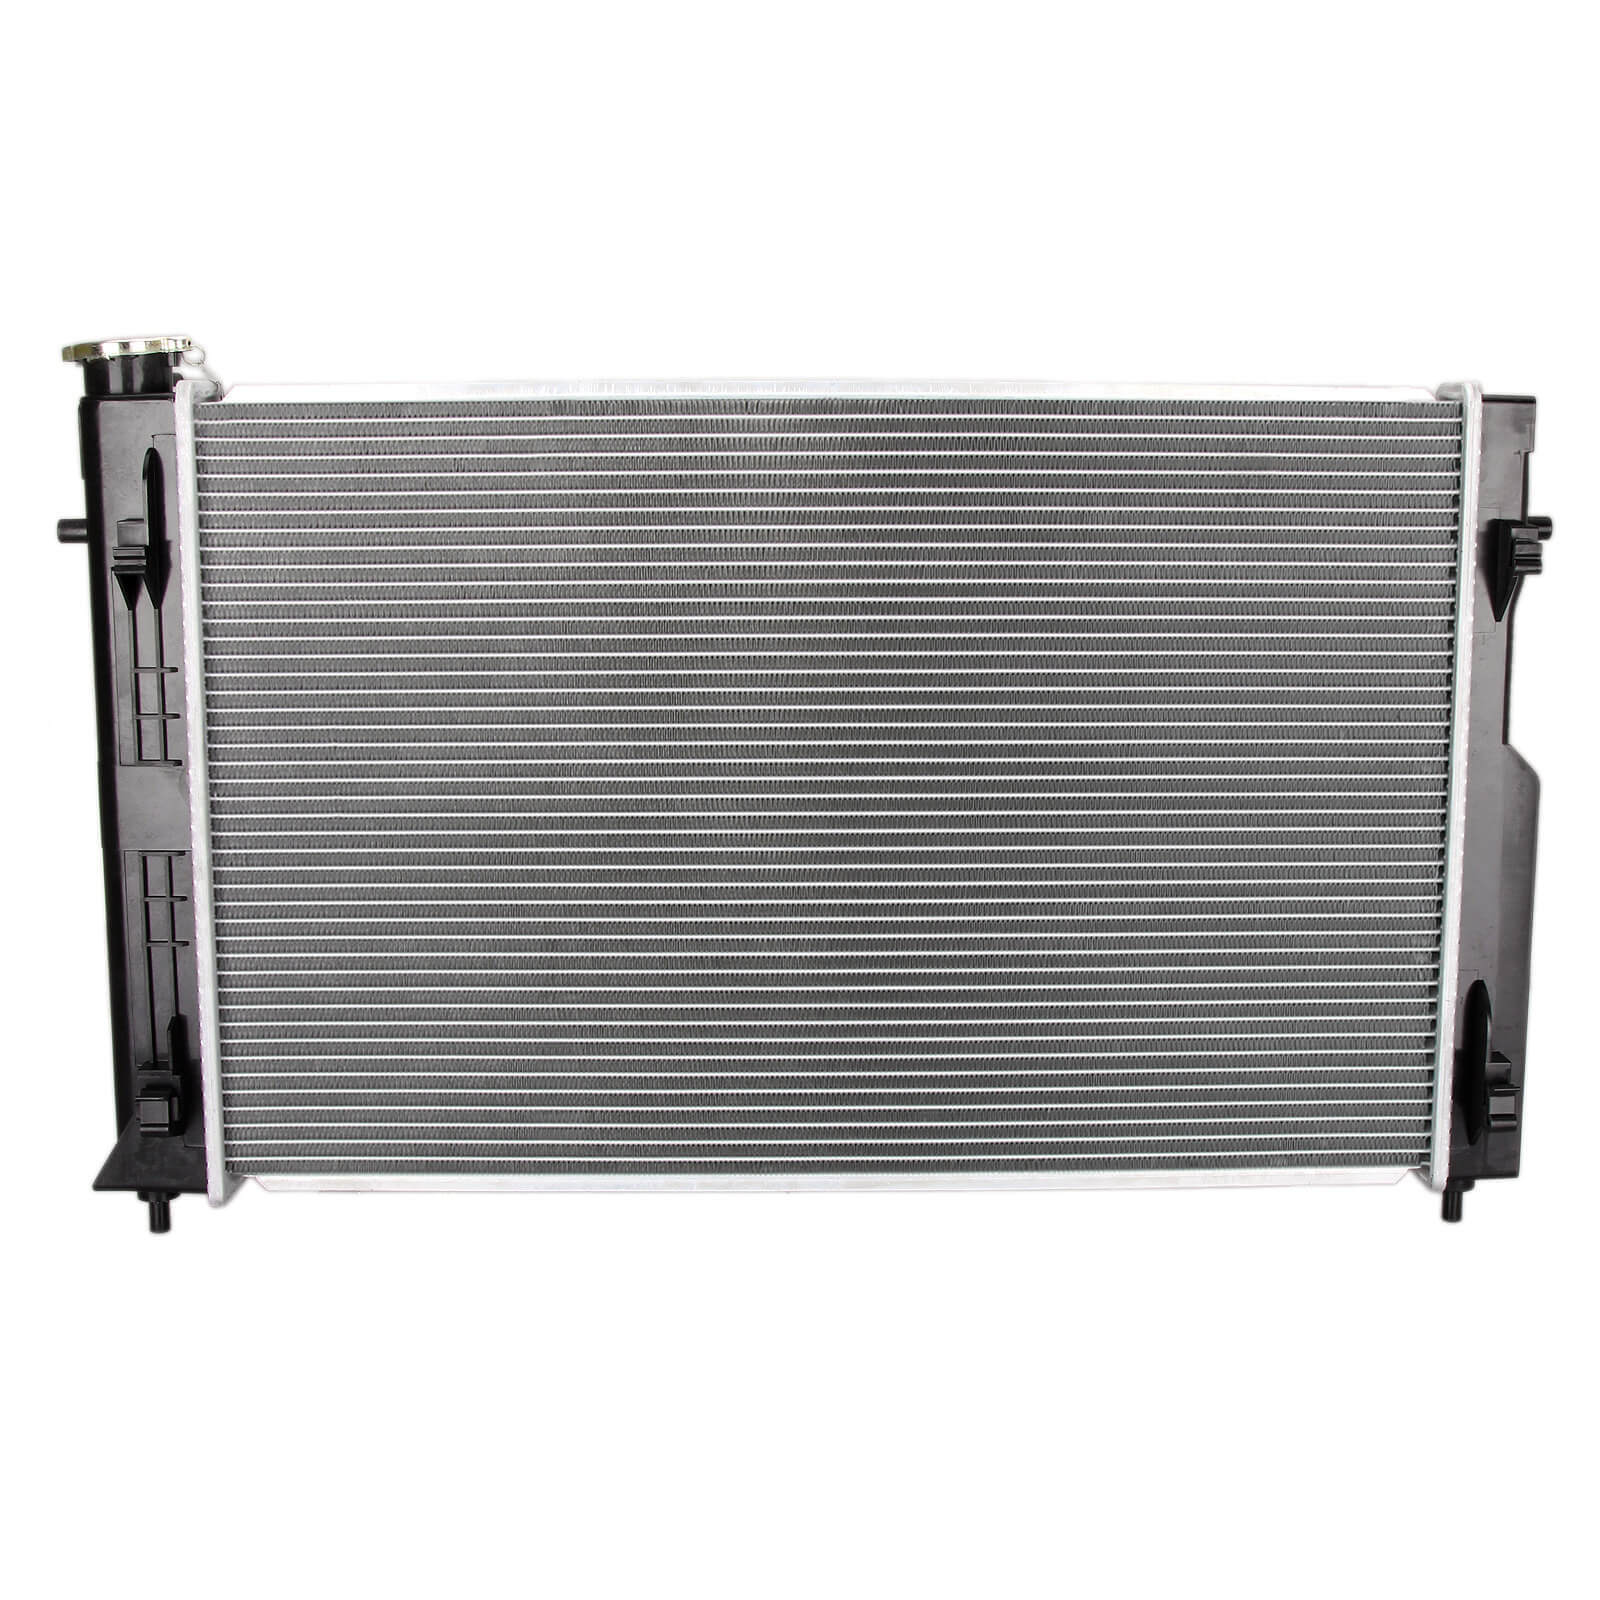 Holden VZ Radiator fit Commodore SV8/SS/HSV 5.7 LS1 6.0 LS2 V8 2004-2006 Manual